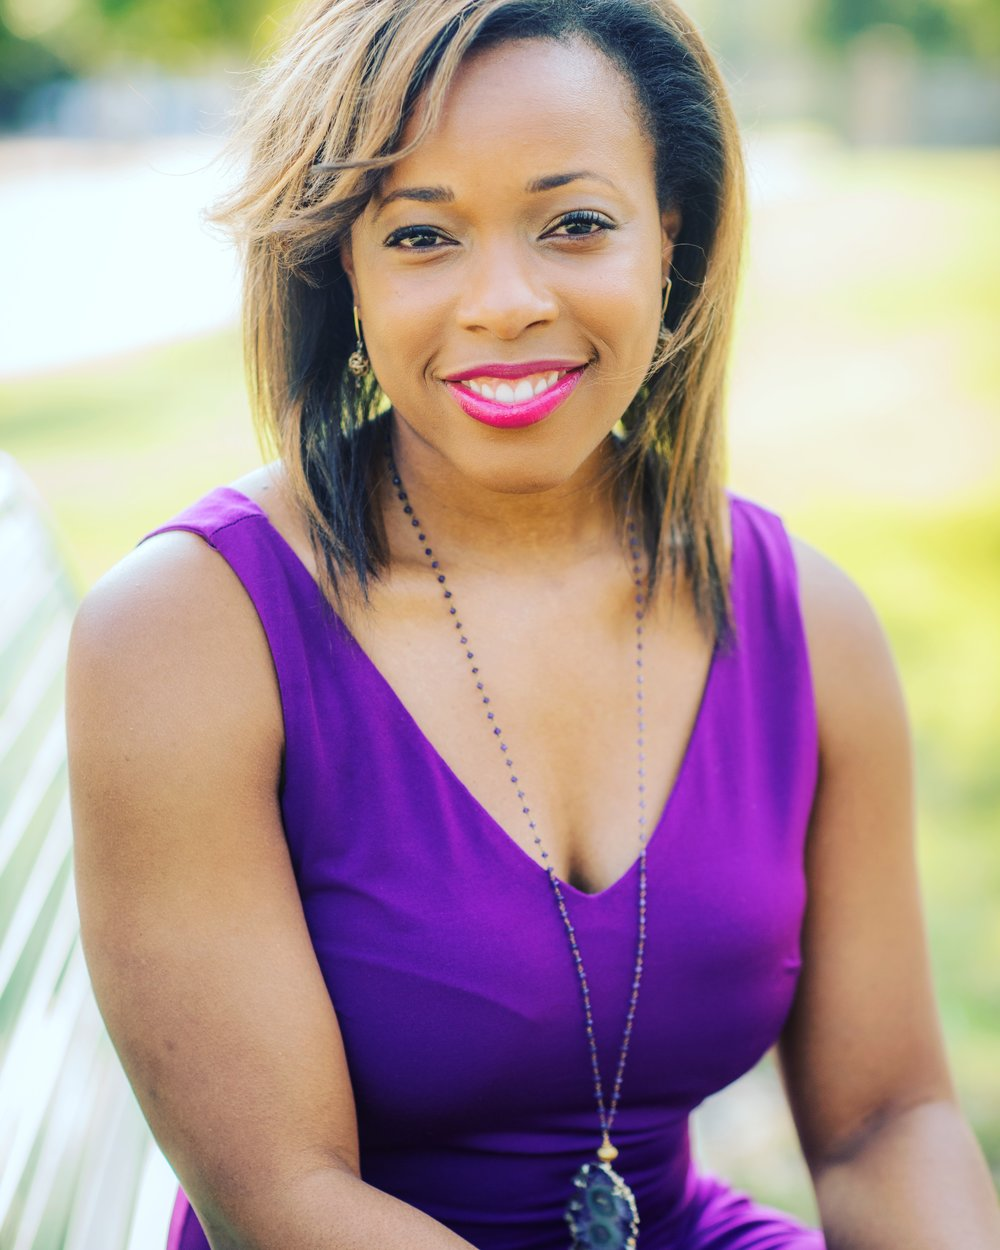 Dr. Roshawnna Novellus is the Founder and CEO of  EnrichHER,  a platform created to provide funding opportunities for the vastly under-served women-led business community.  She has been featured in Fast Company, Forbes, Huffington Post, Inc. WSJ, and Rolling Out. She has also completed the Pipeline Angels Fellowship, a Kauffman program in angel investing. Roshawnna serves on the Commission on Women for the City of Atlanta and was honored as one of the Women Who Means Business by the Atlanta Business Chronicle and one of the 40 Under 40 by Georgia Trend.